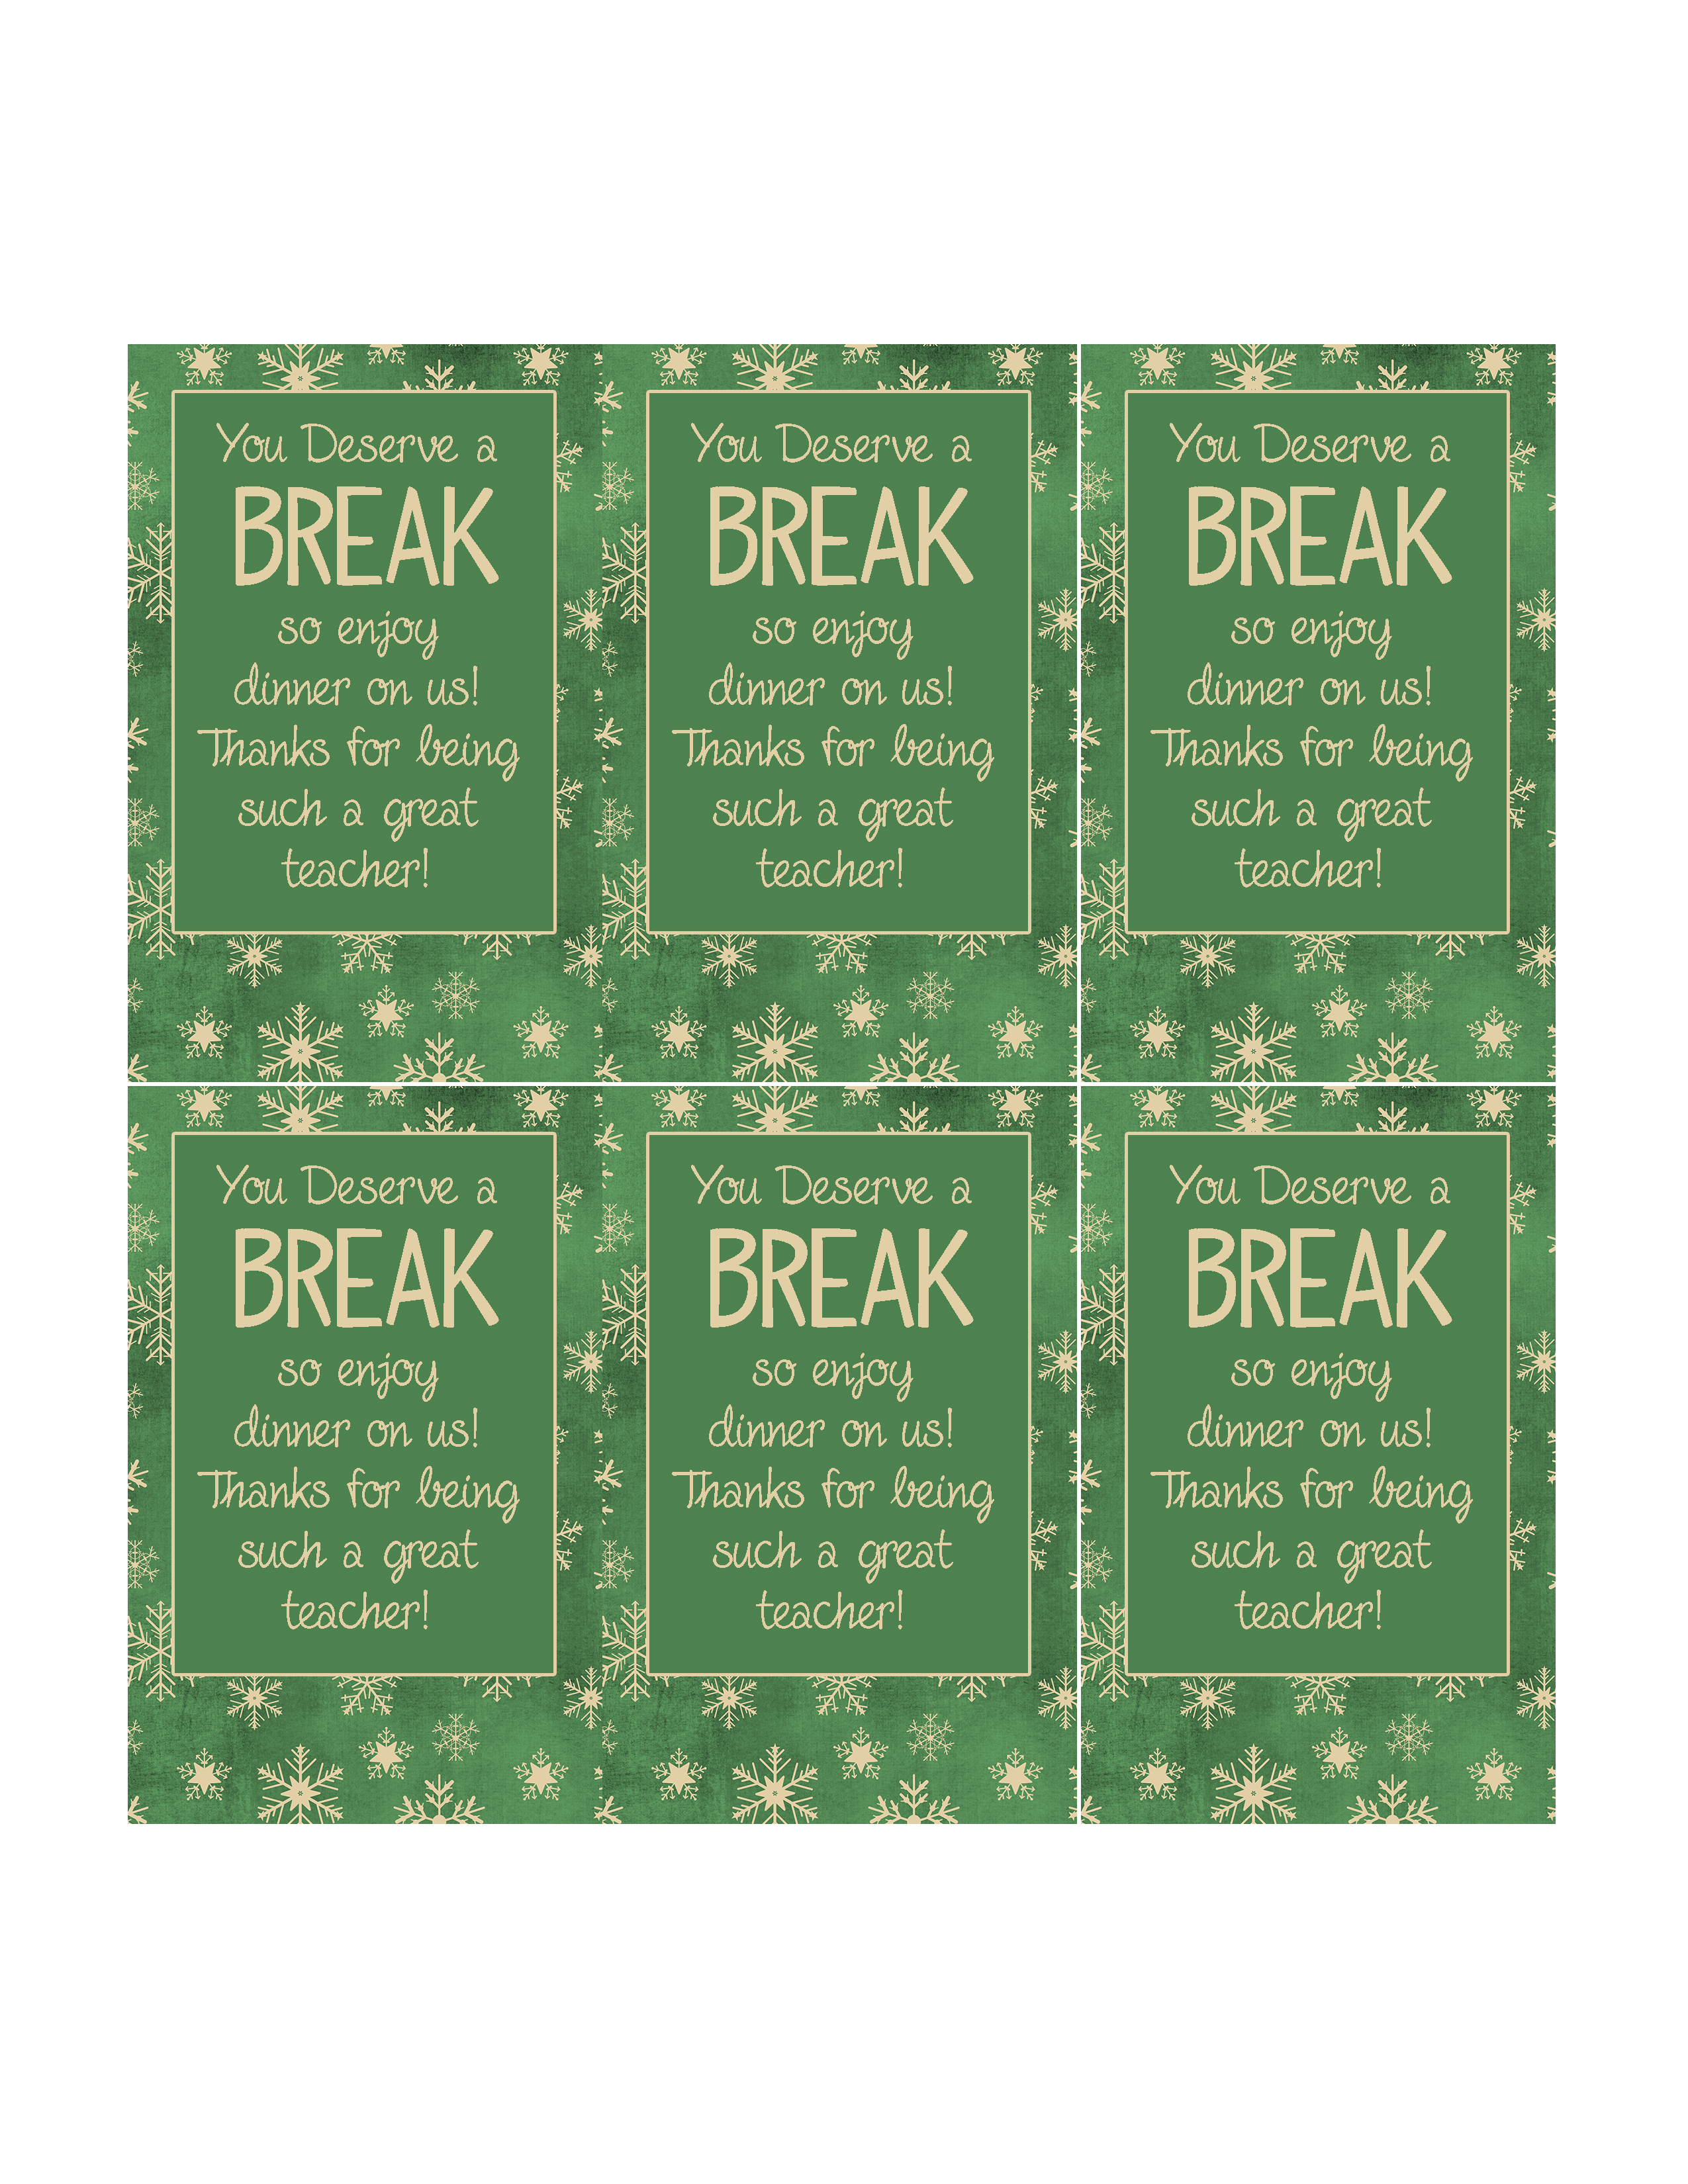 graphic regarding You Deserve a Break Printable named 8 Easy and Simple Trainer Xmas Reward Plans with Printable